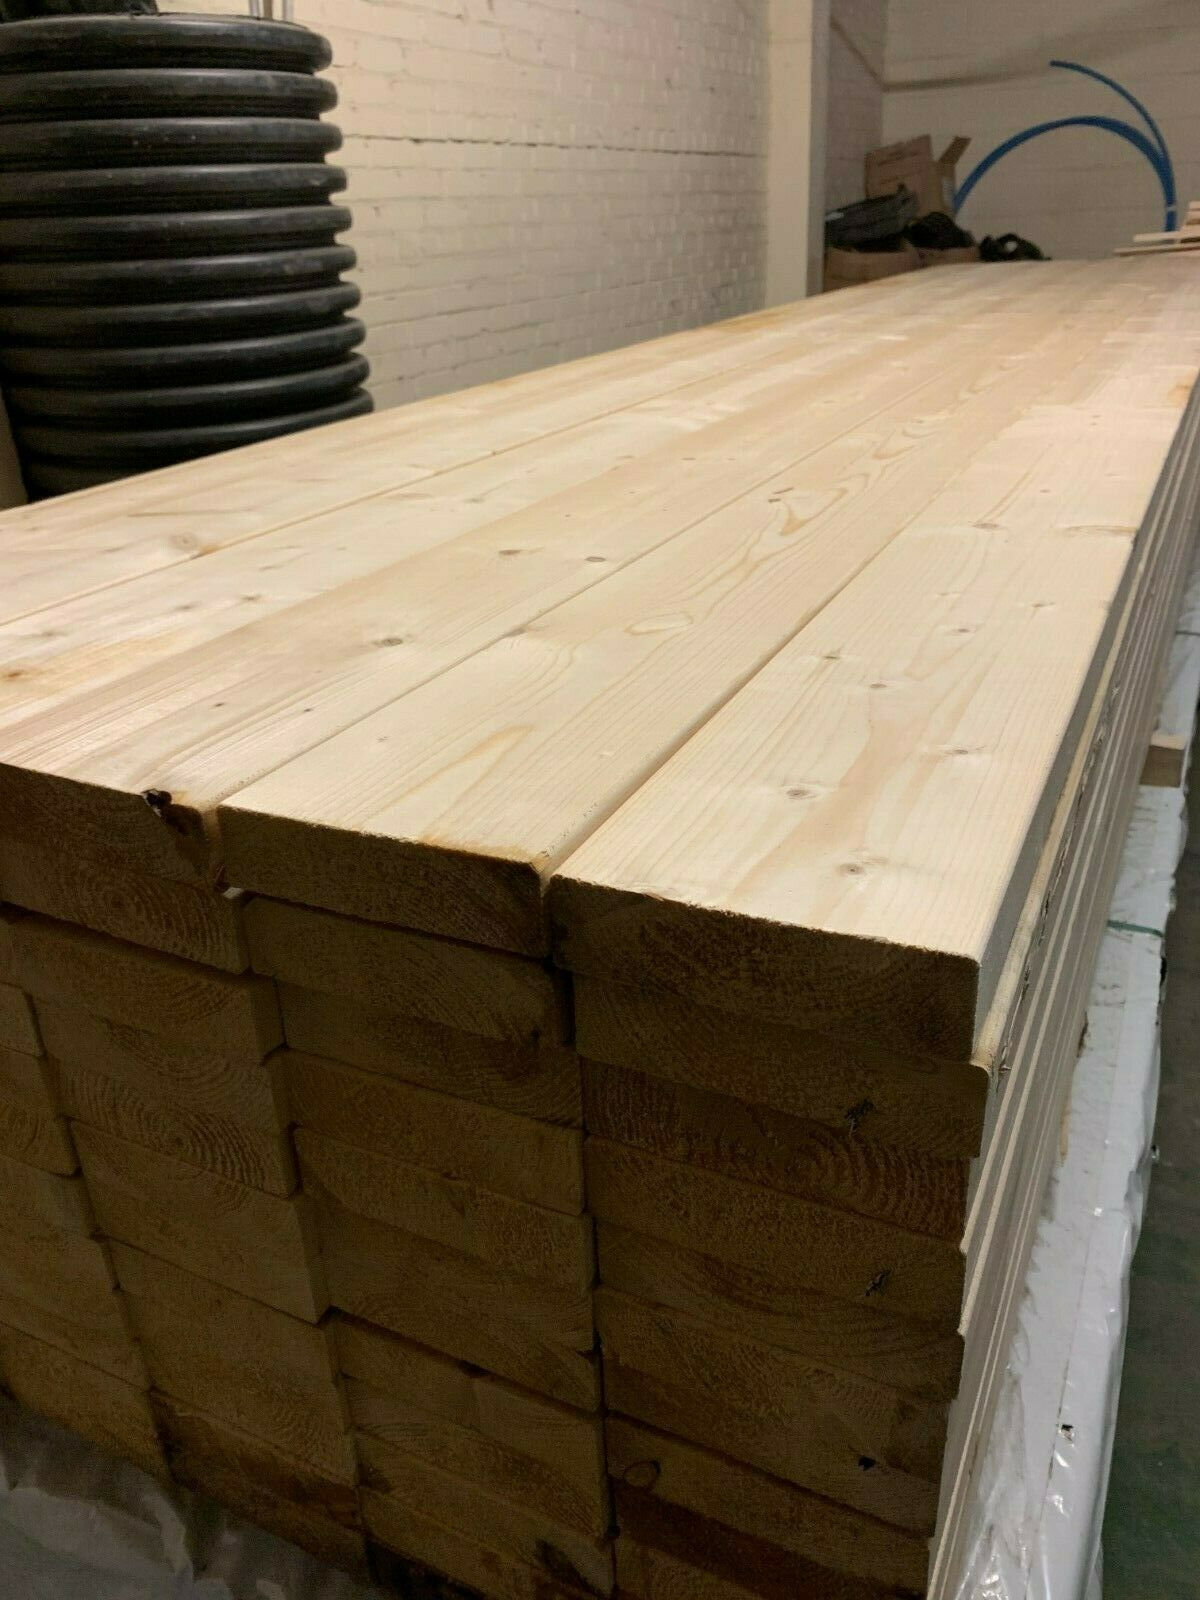 8X2 C16 TIMBER JOIST 4.8M - £25 PER LENGTH INC VAT